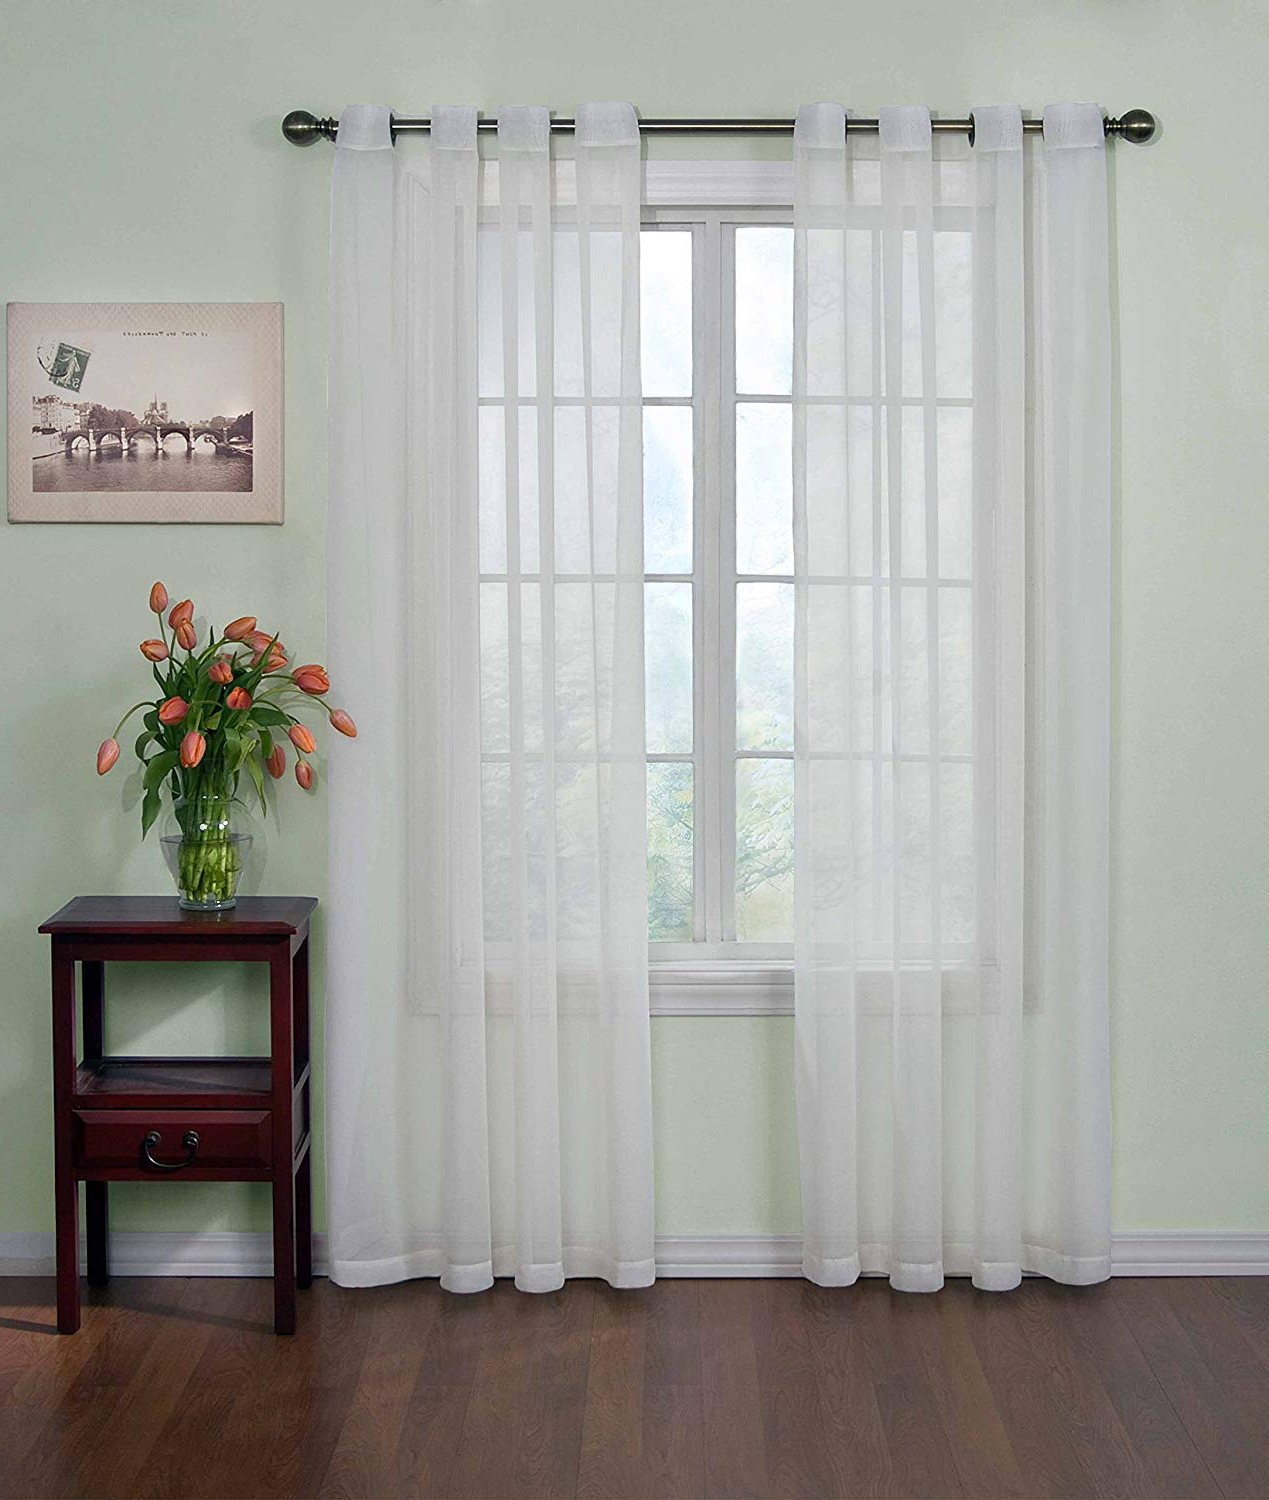 """Well Known Light Filtering Sheer Single Curtain Panels Intended For Curtain Fresh Sheer Curtains For Bedroom – Arm And Hammer 59"""" X 84"""" Light Filtering Single Panel Grommet Top Window Treatment For Living Room, White (View 4 of 20)"""